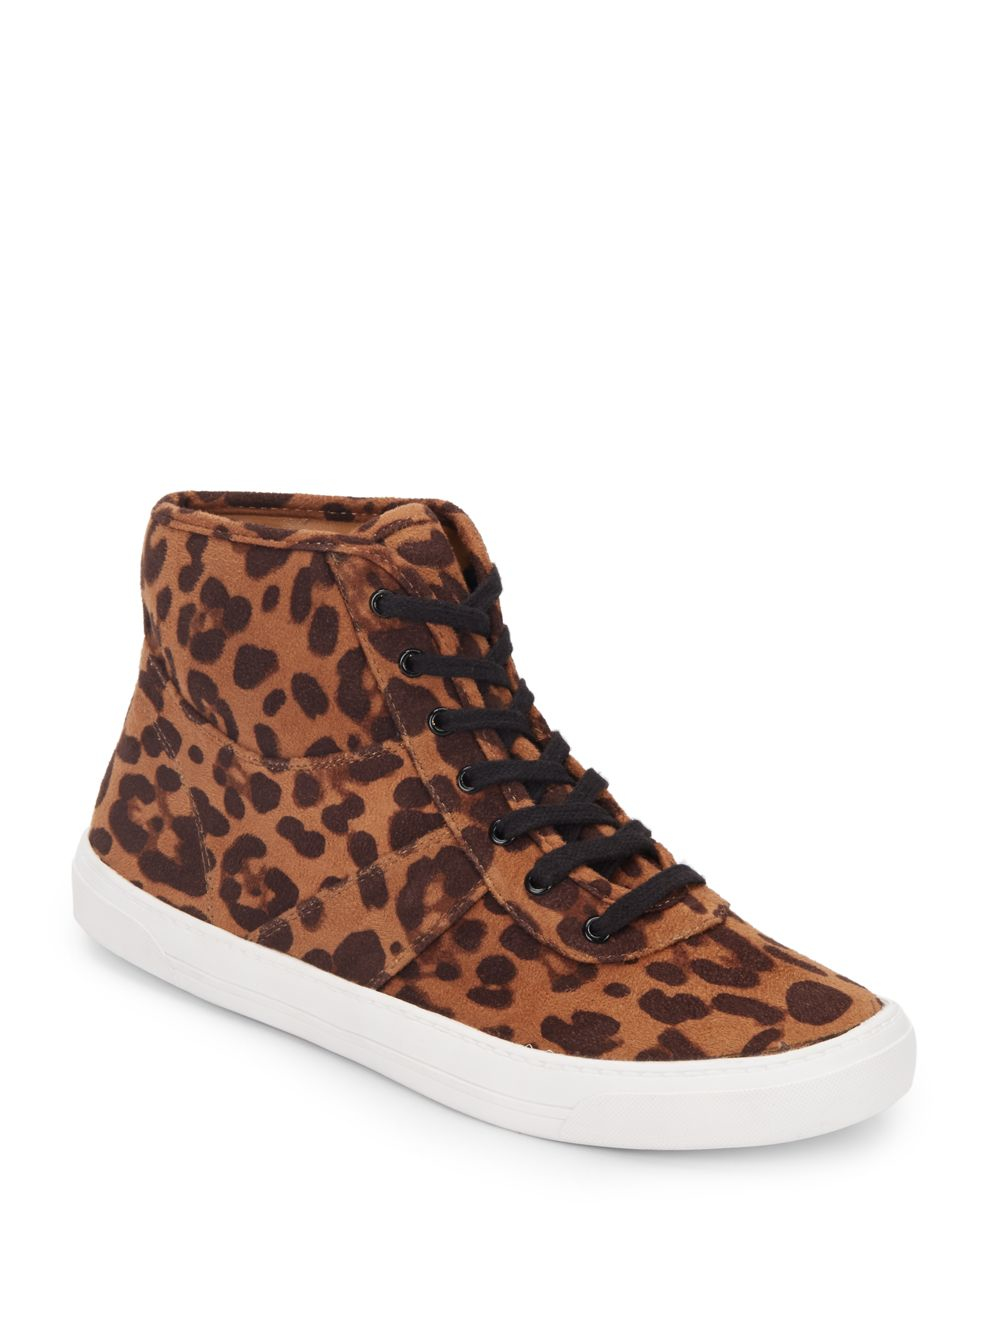 leopard high top sneakers 28 images dv by dolce vita serene leopard print high top sneakers. Black Bedroom Furniture Sets. Home Design Ideas